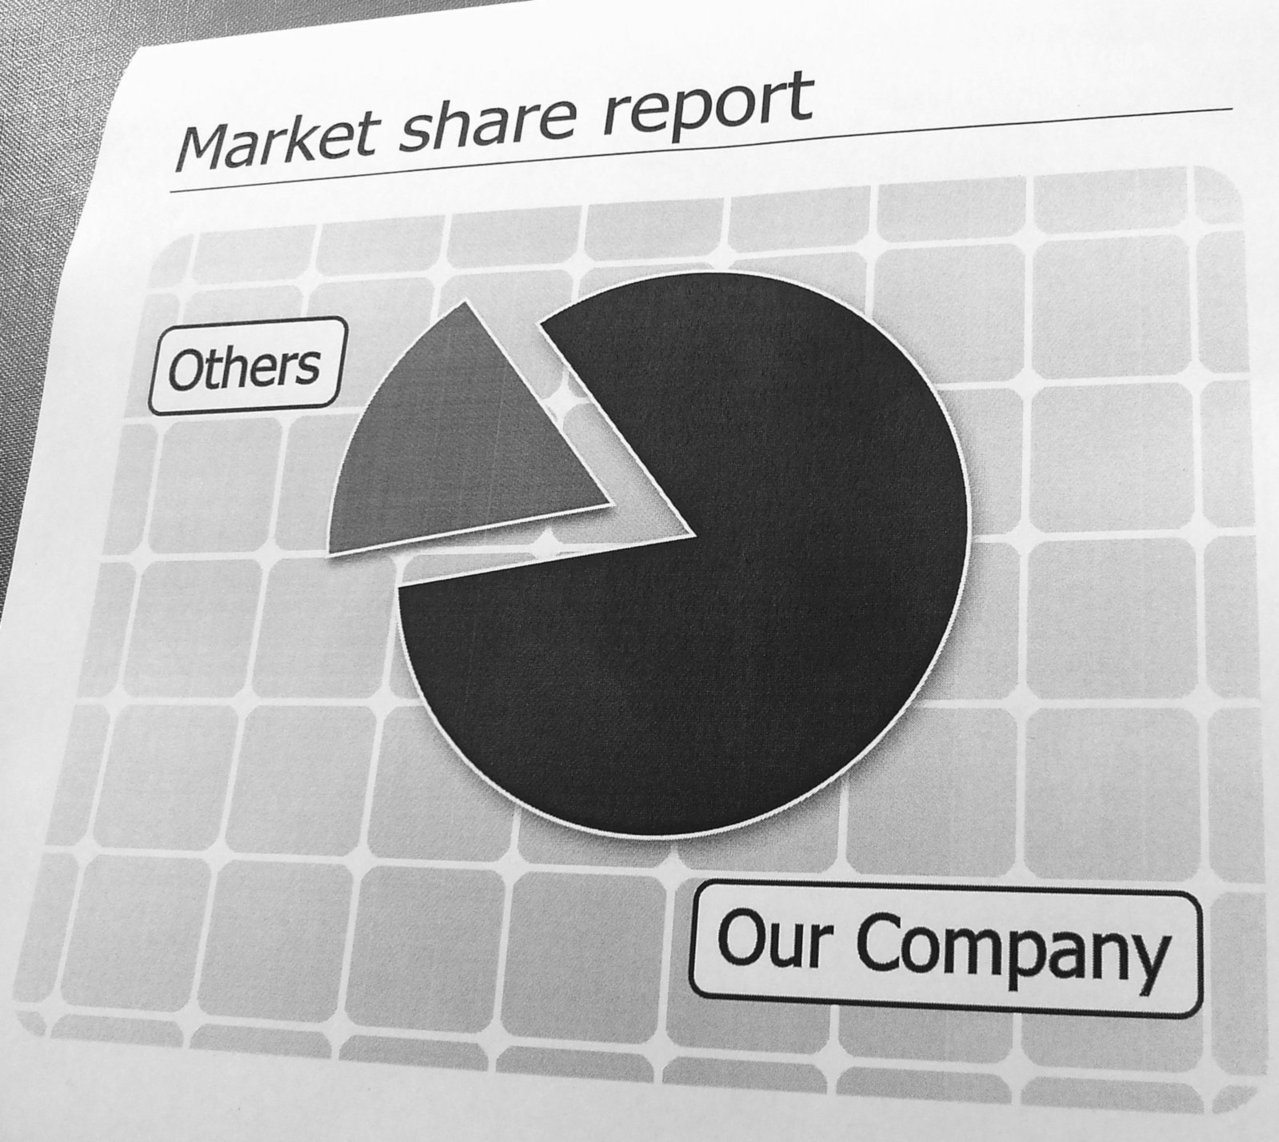 Contemporary hospitality marketing management ihtmi learning market share report a pie chart 1238366 1279x1142 nvjuhfo Image collections